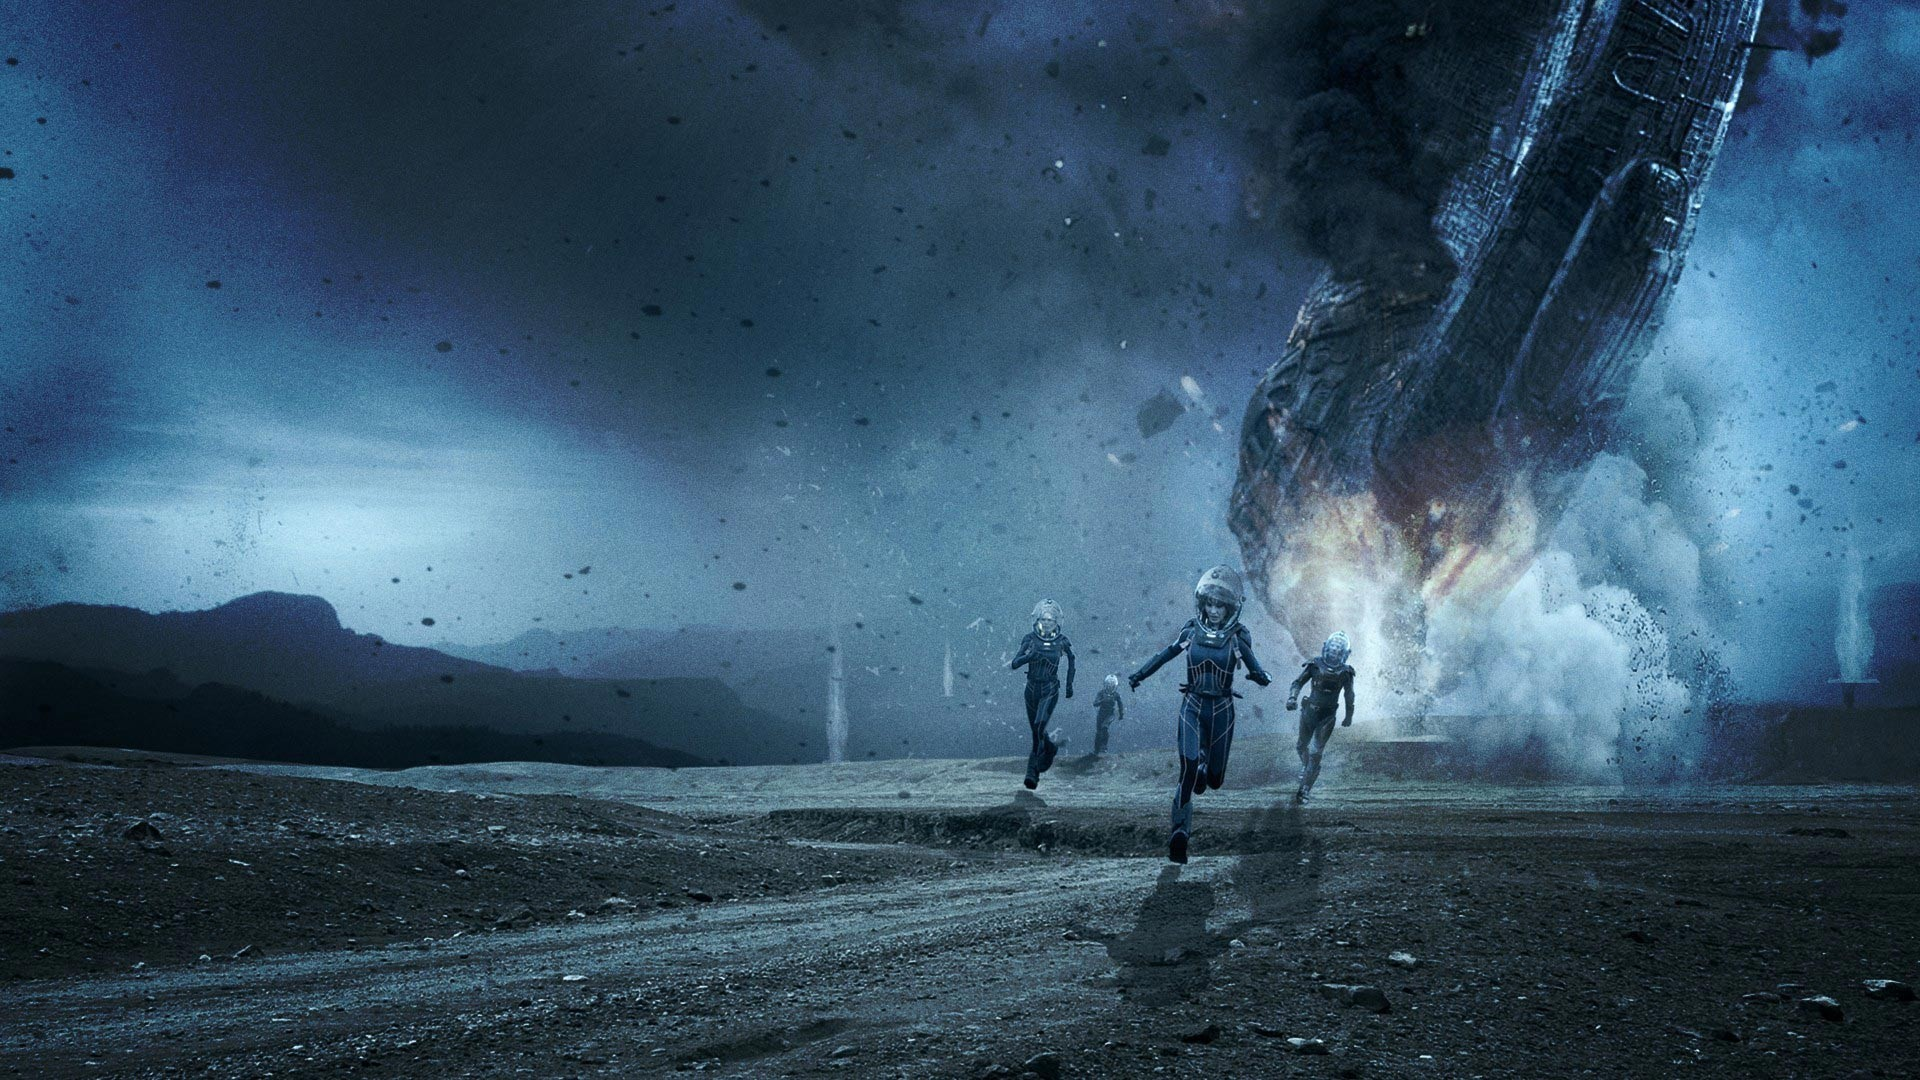 HD Widescreen Wallpapers – prometheus wallpaper (Stansfield Williams  1920×1080)